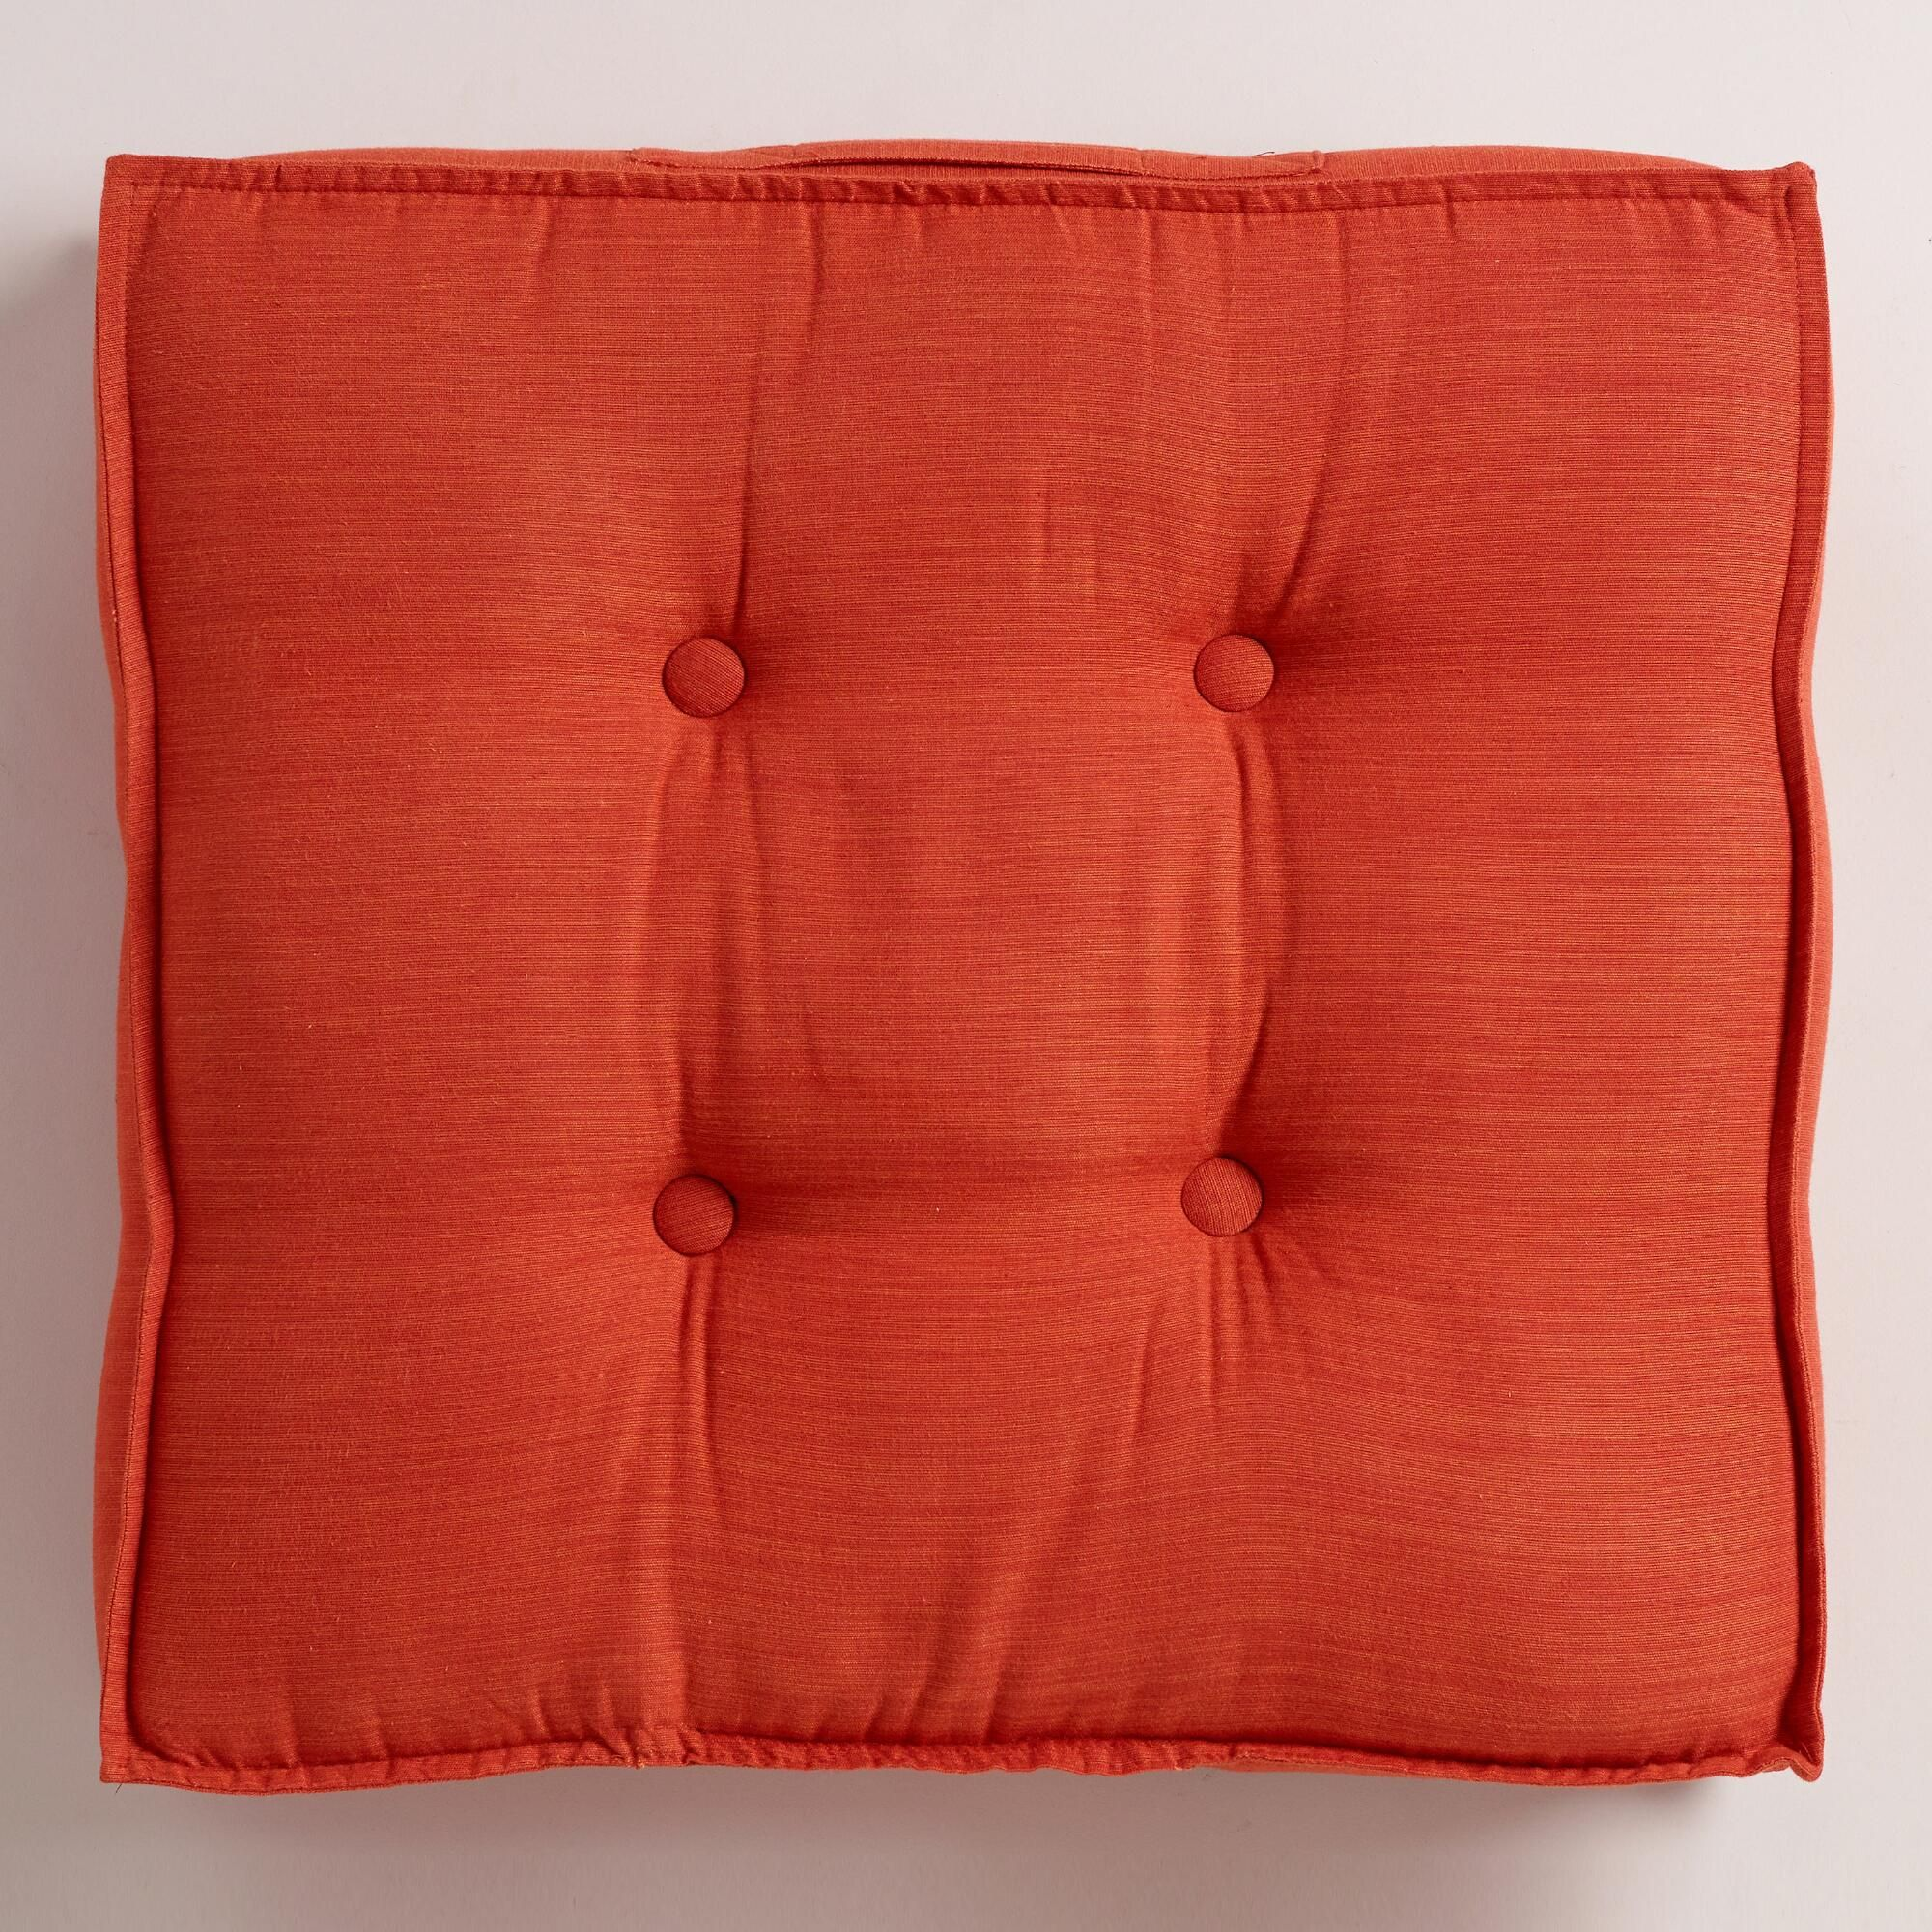 When there are more guests than seating, our exclusive Orange Khadi ...